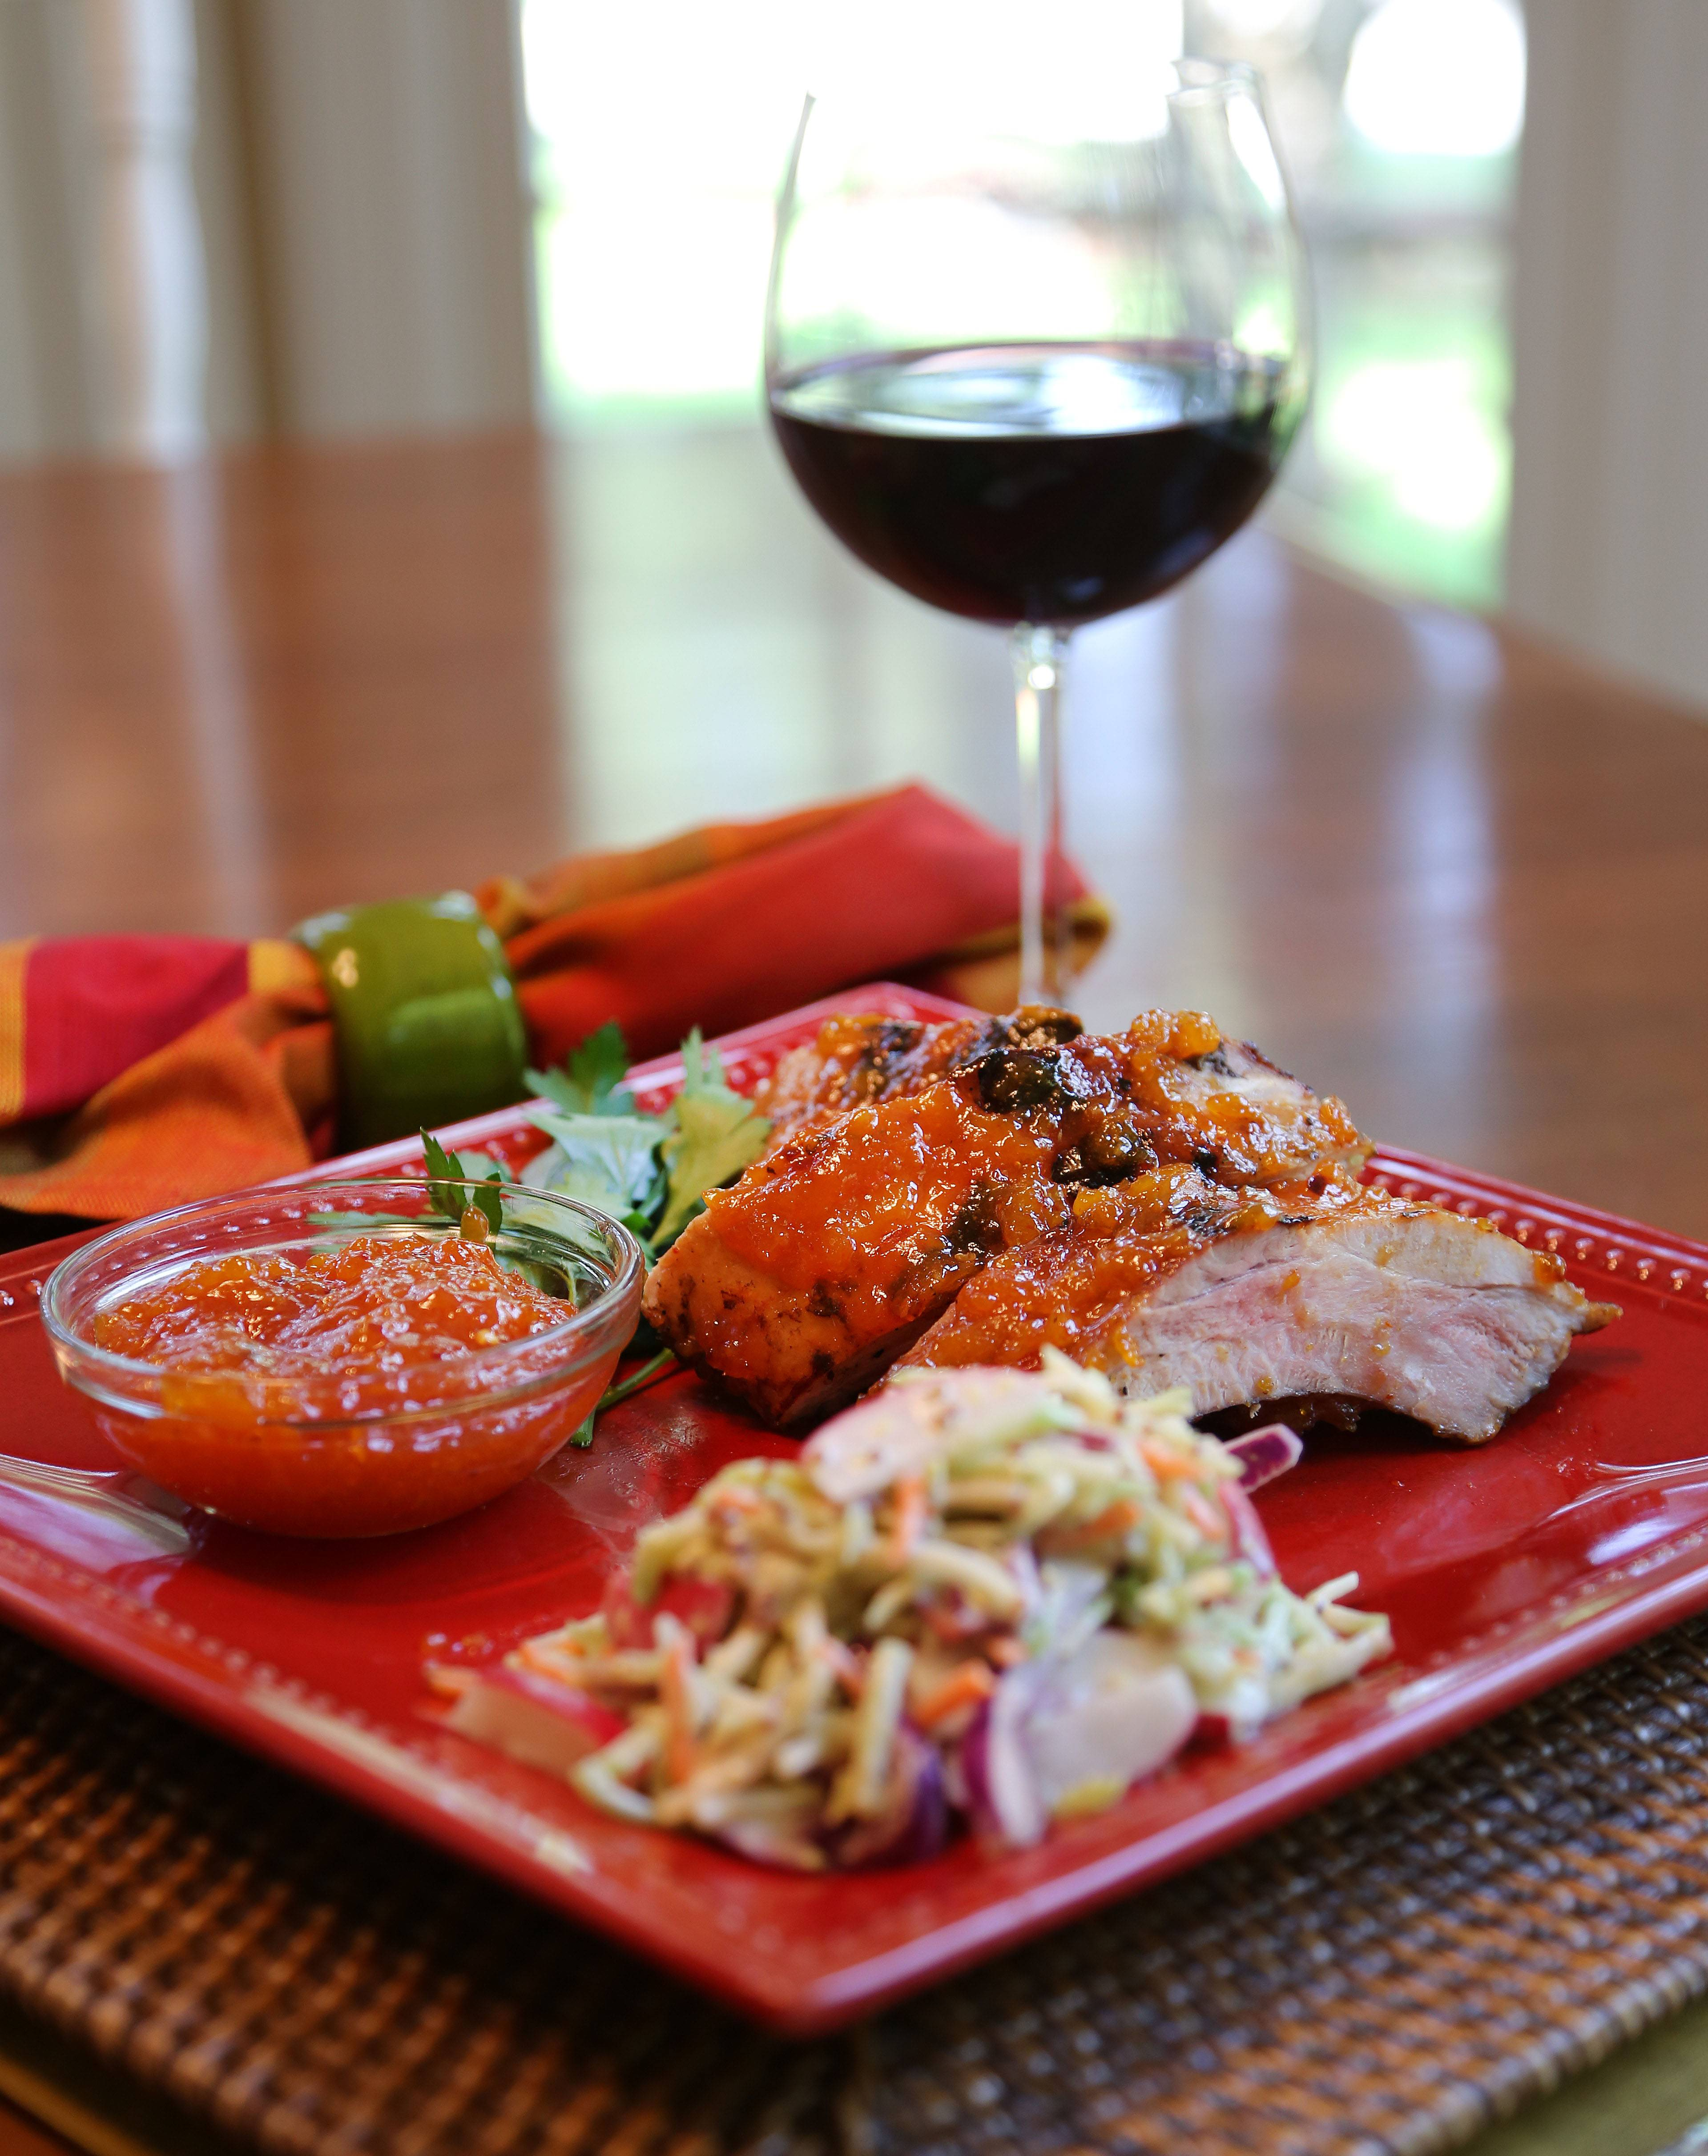 Pam Larson of Mundelein turned apricots and peach tea into a chutney for ribs and added radishes to a slaw to accompany the meat.